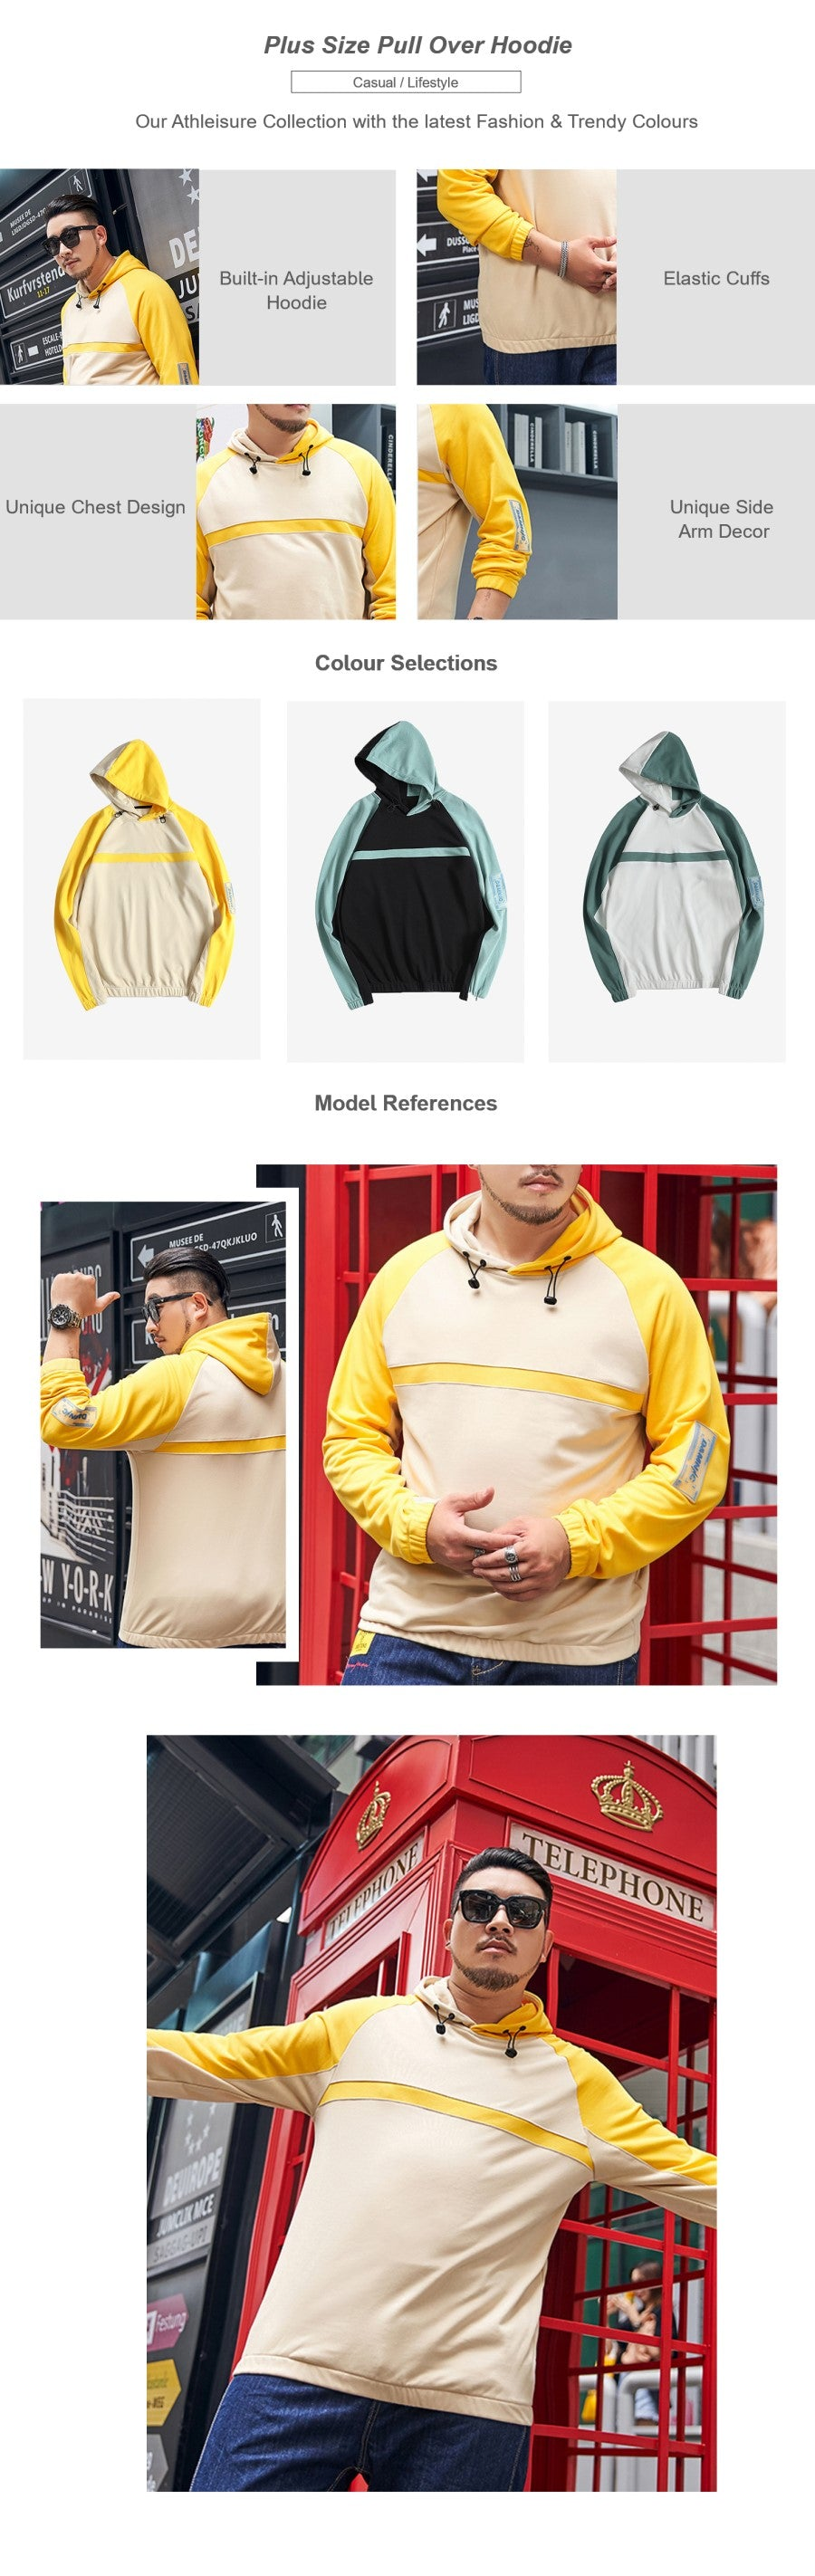 Plus Size Pull Over Hoodie